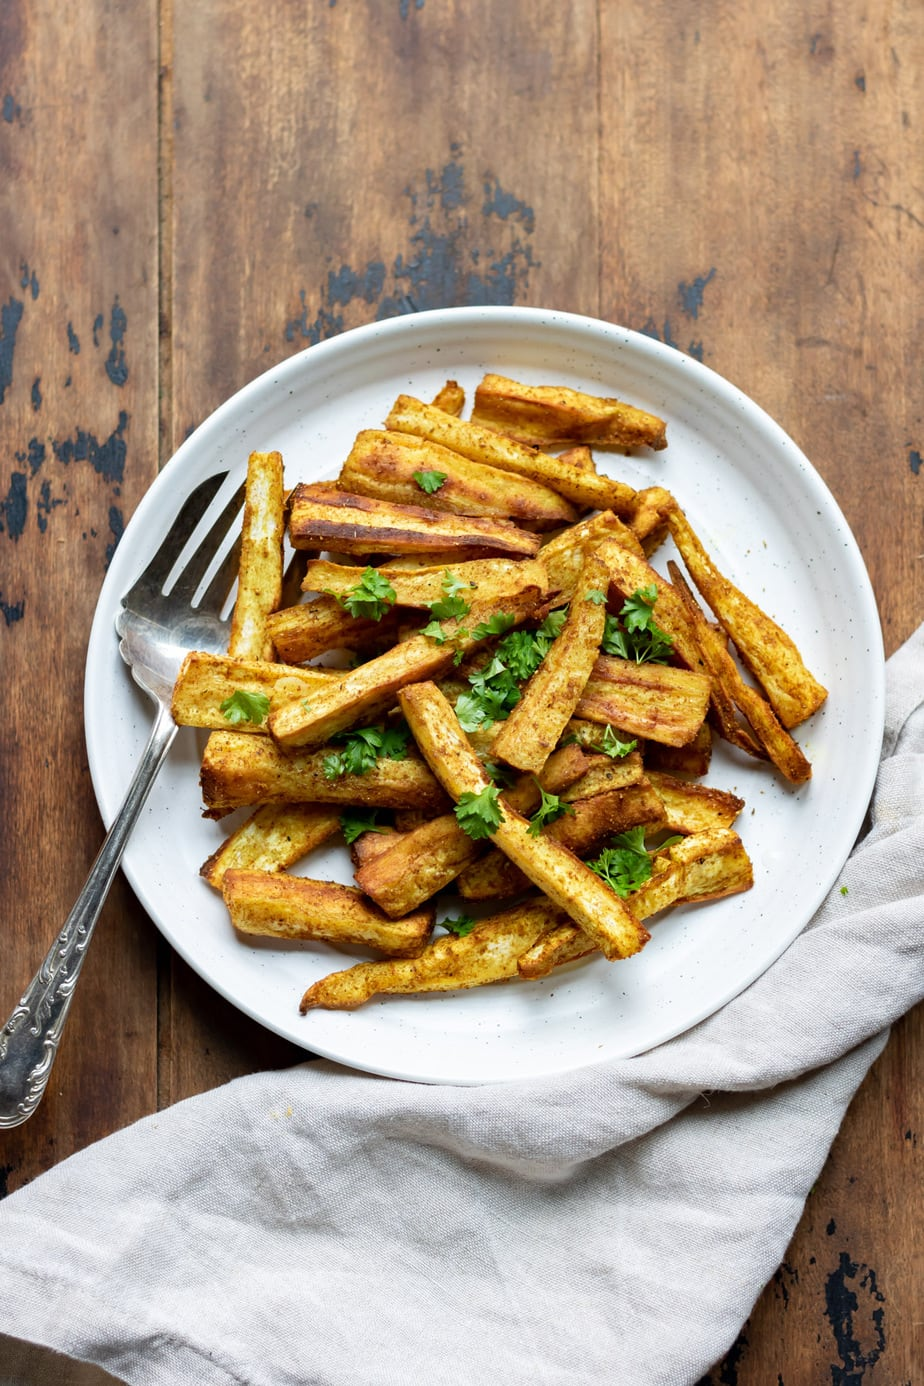 Wooden table with plate of parsnip fries.